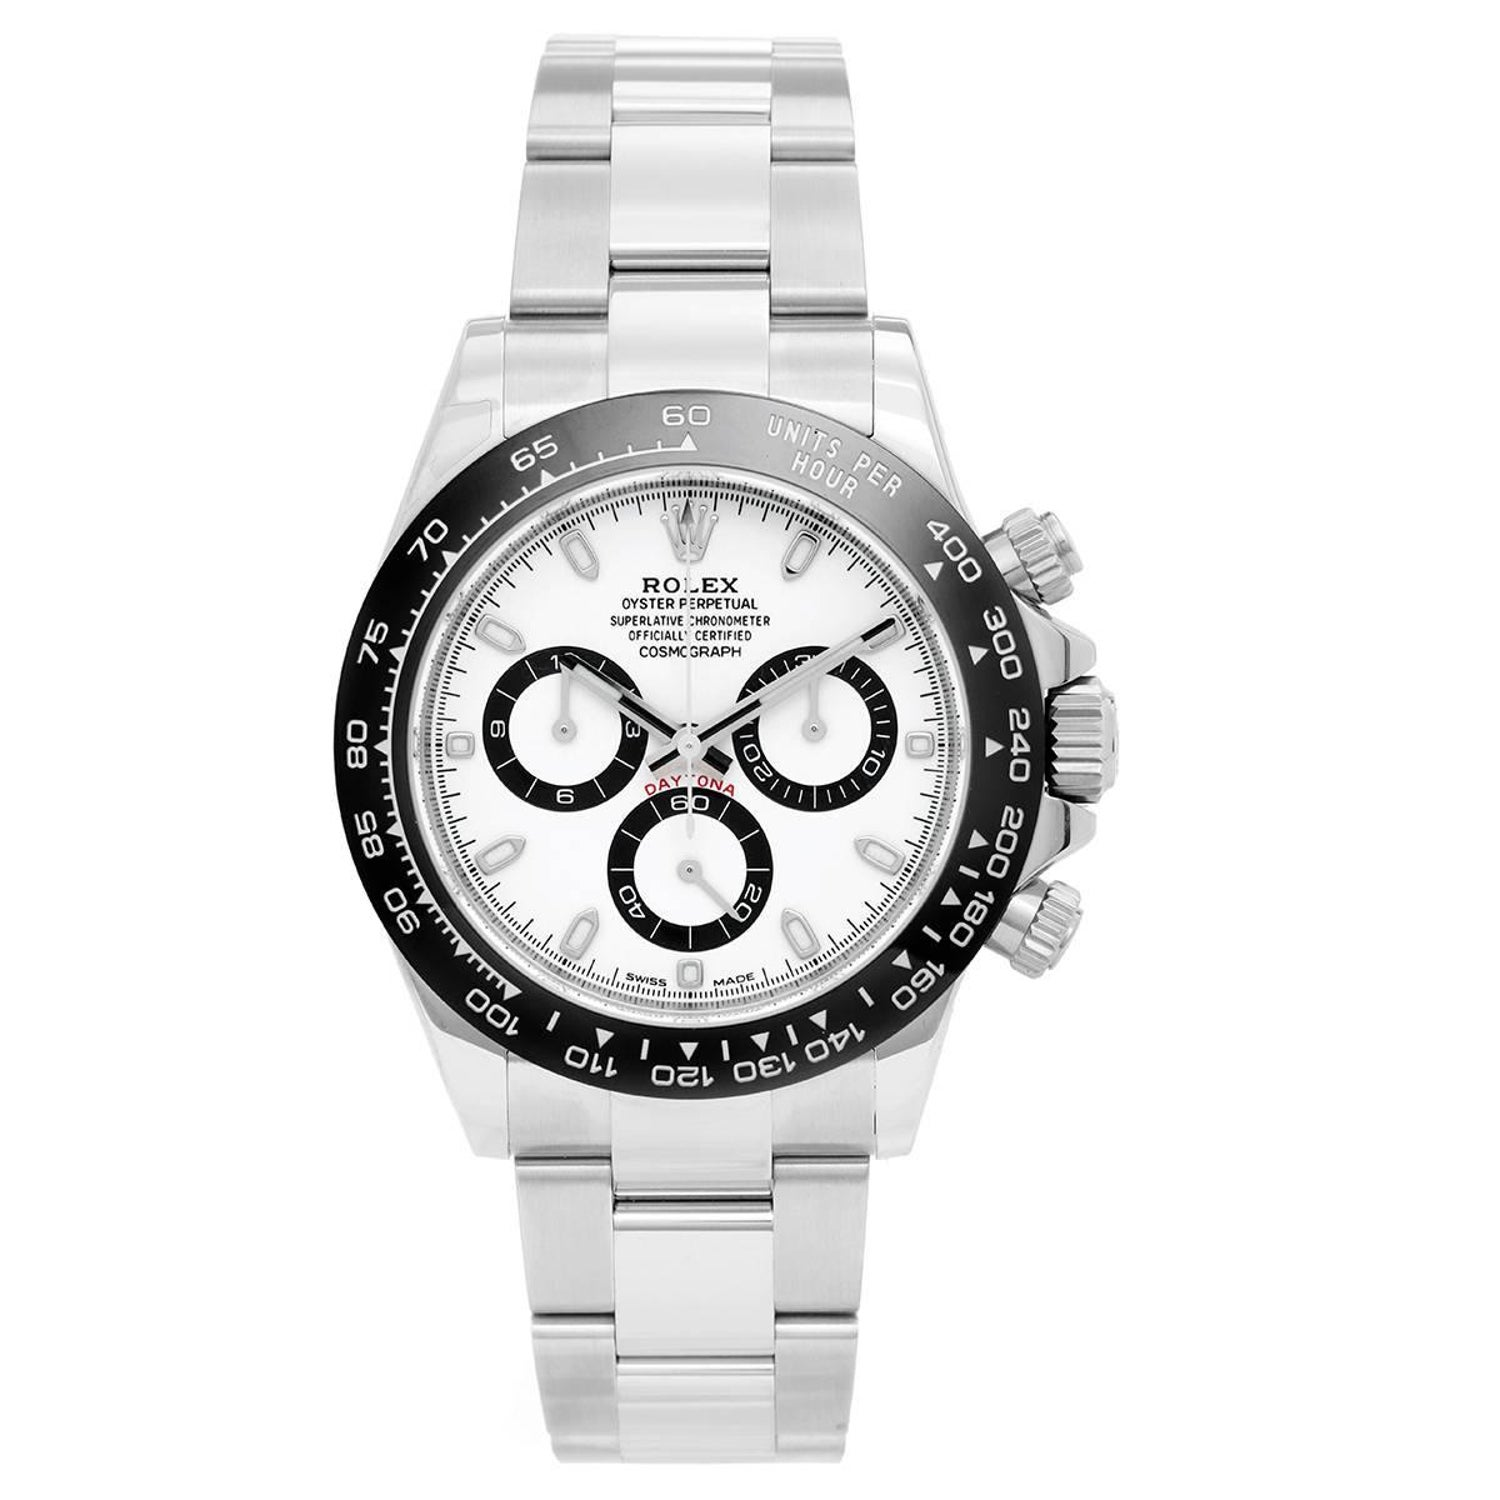 859c188d61190 Rolex Stainless Steel Ceramic Cosmograph Daytona Automatic Wristwatch at  1stdibs